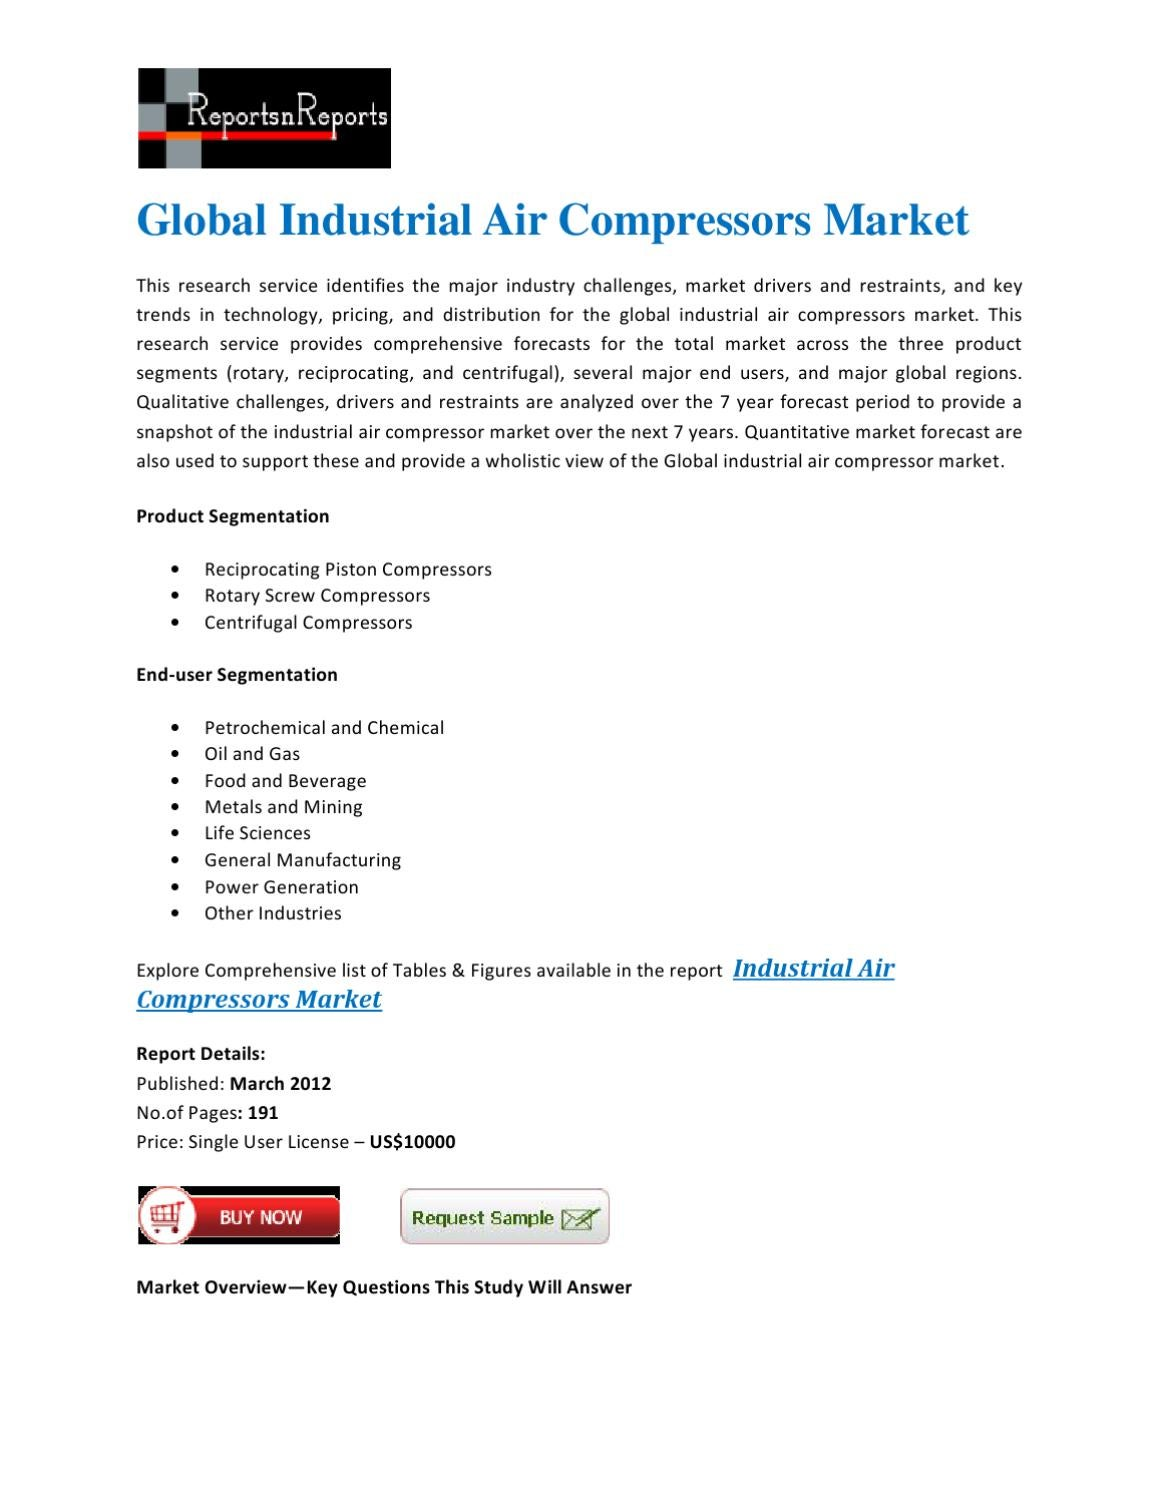 Global Industrial Air Compressors Market by lisa martin - issuu